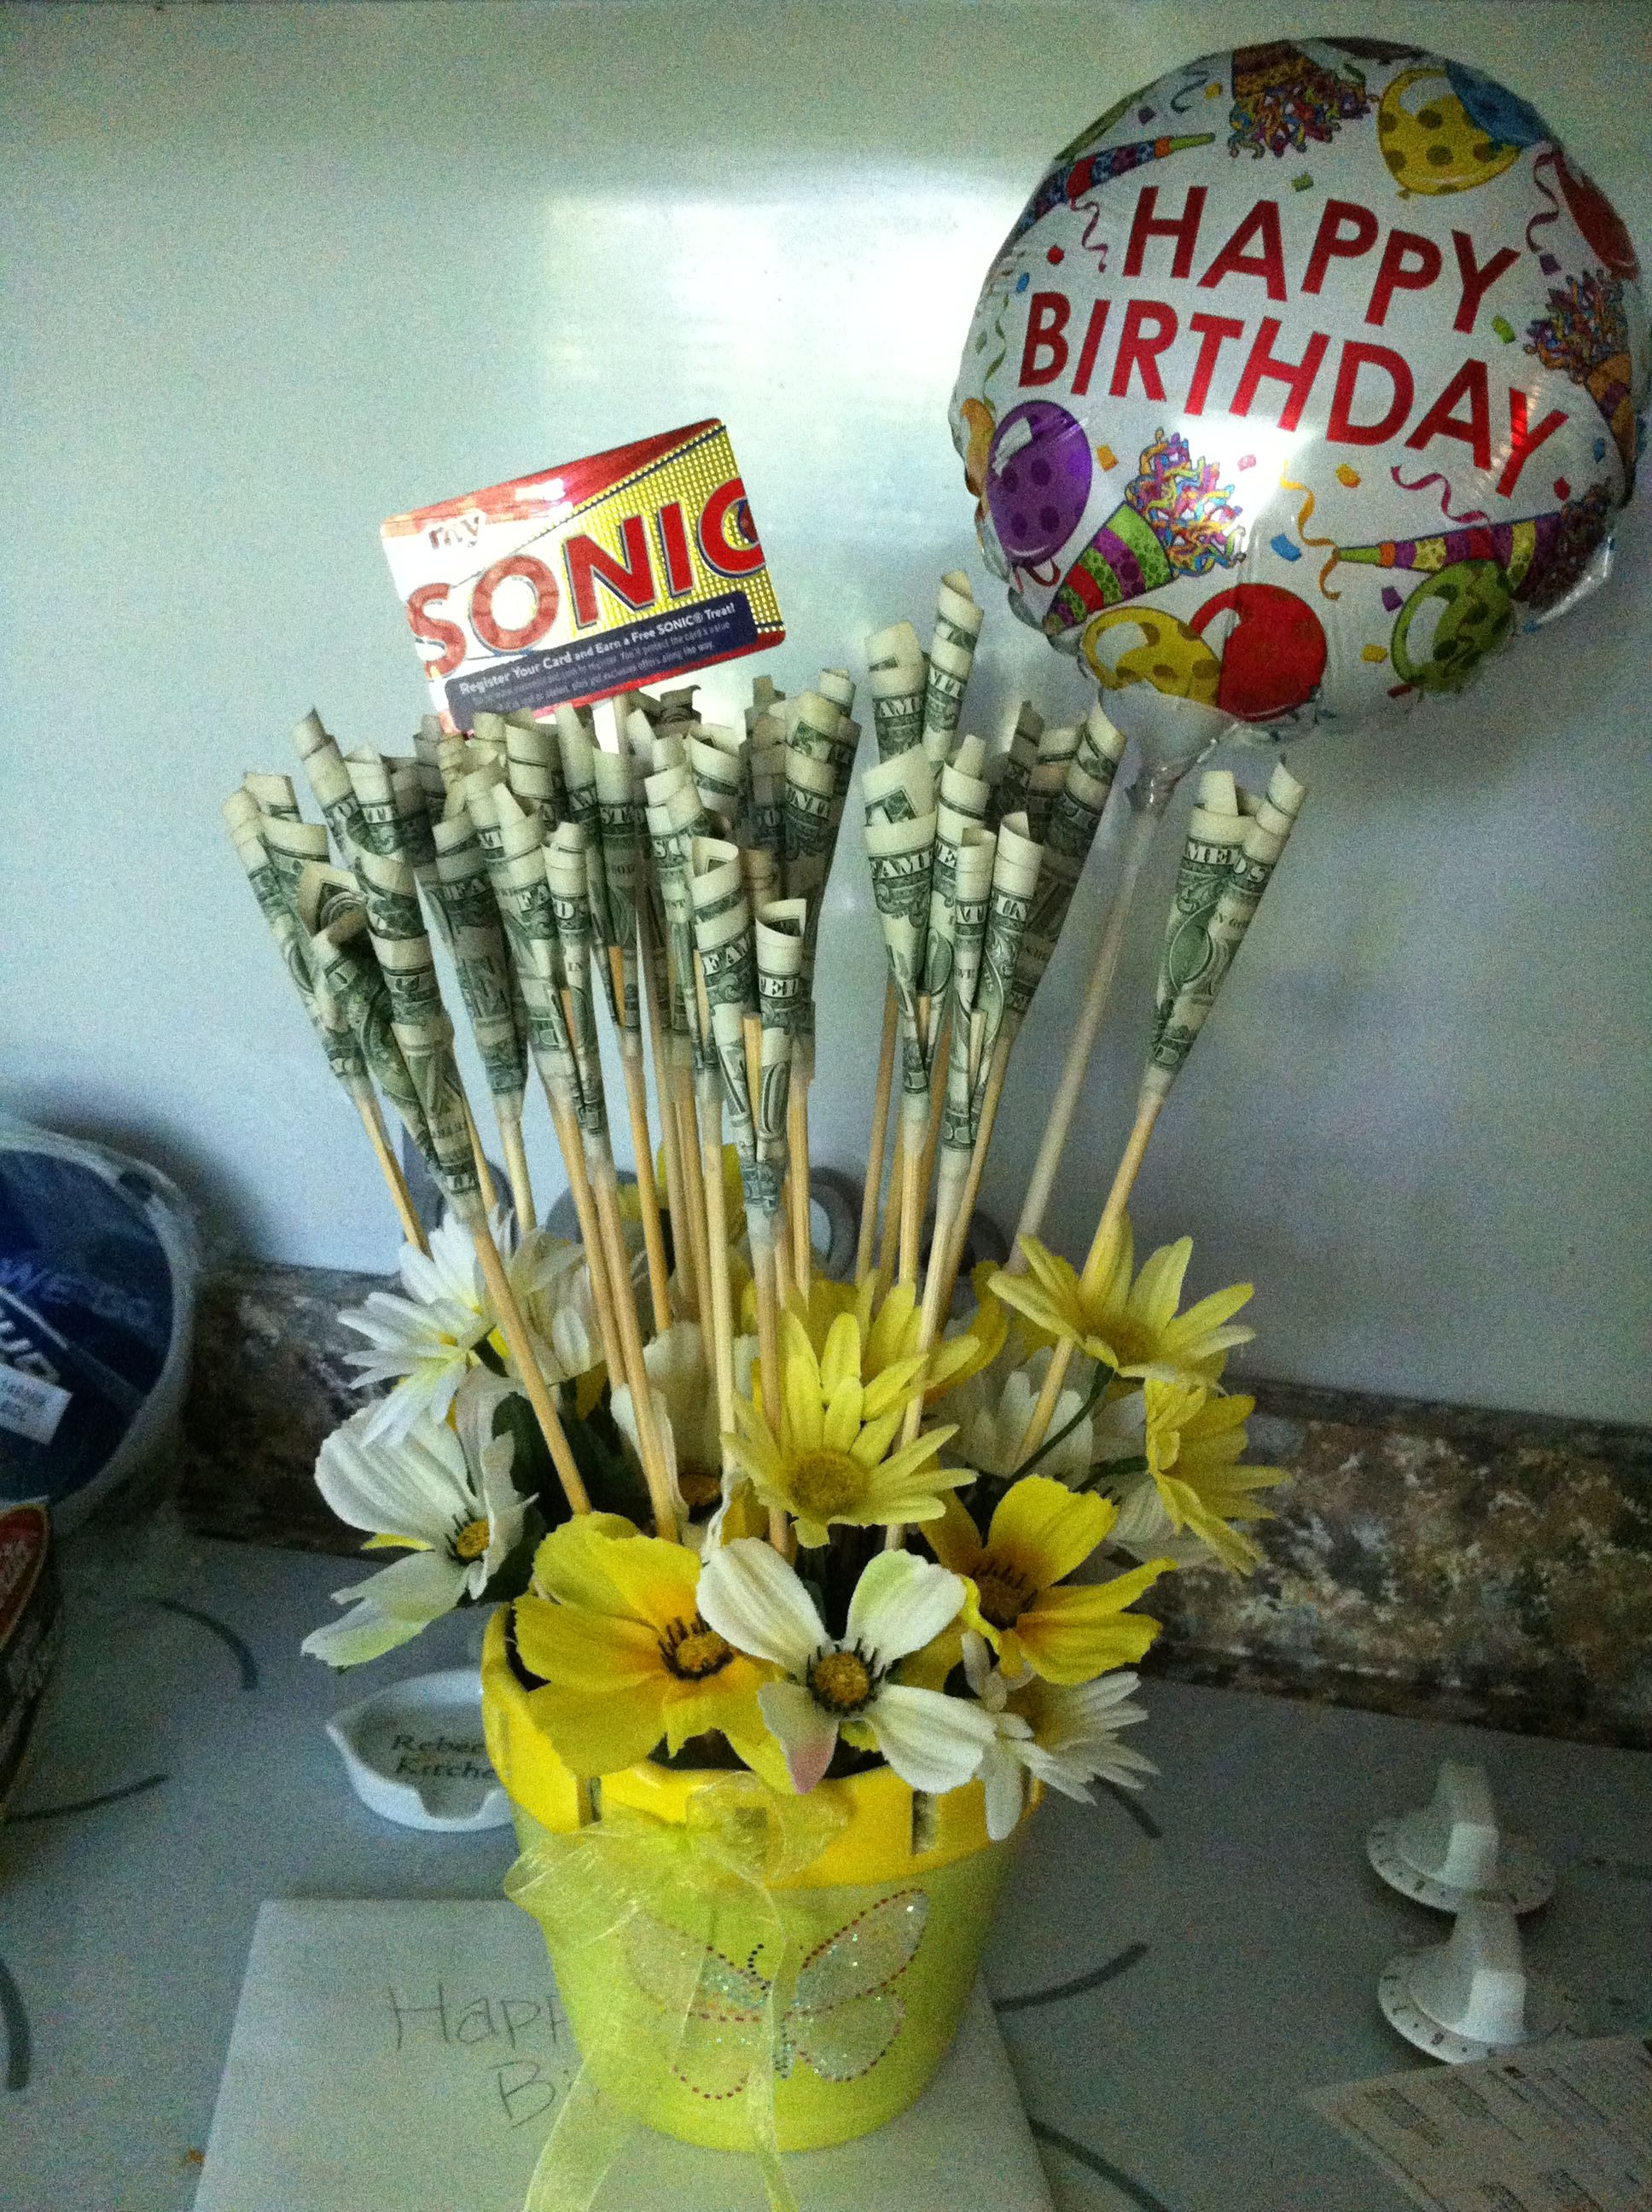 Birthday Money Bouquet I Want This With Roses And Without The Gift Card Birthday Gift Cards Money Bouquet What Is Birthday